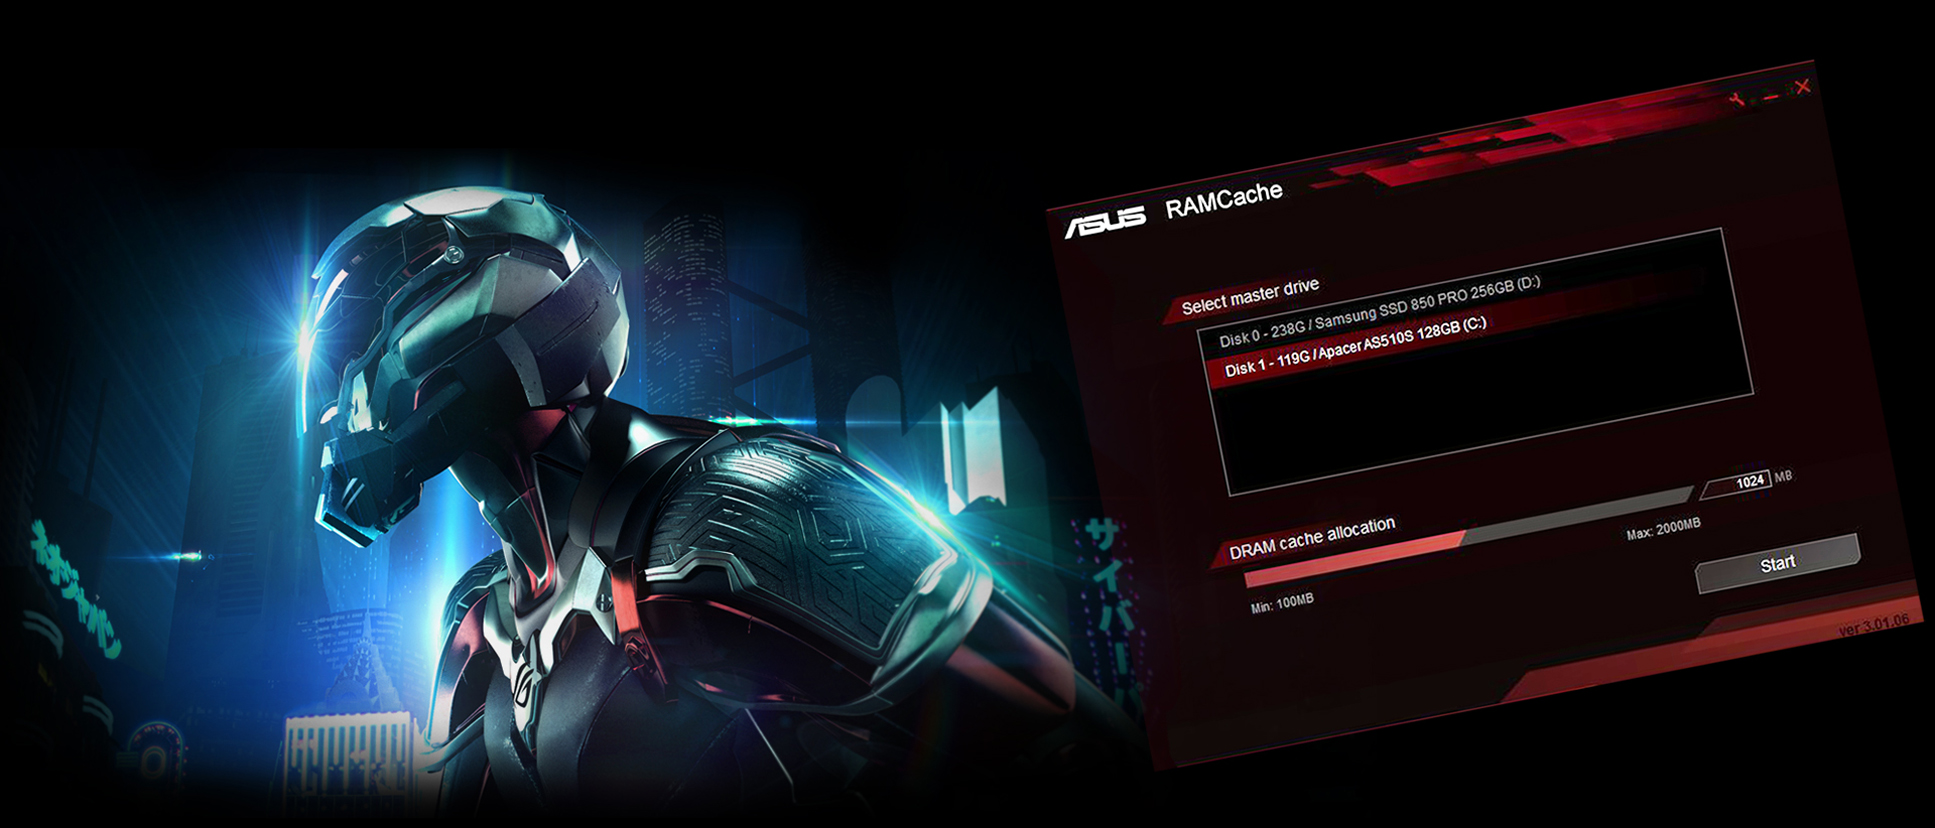 Rog Rampage V Edition 10 Motherboards Asus Usa Way Switch Power Into Light Ramcache Turns Milliseconds Microseconds To Boost Game Load Times Stratospheric Levels And Minimizes Risk Of Data Loss Course Its